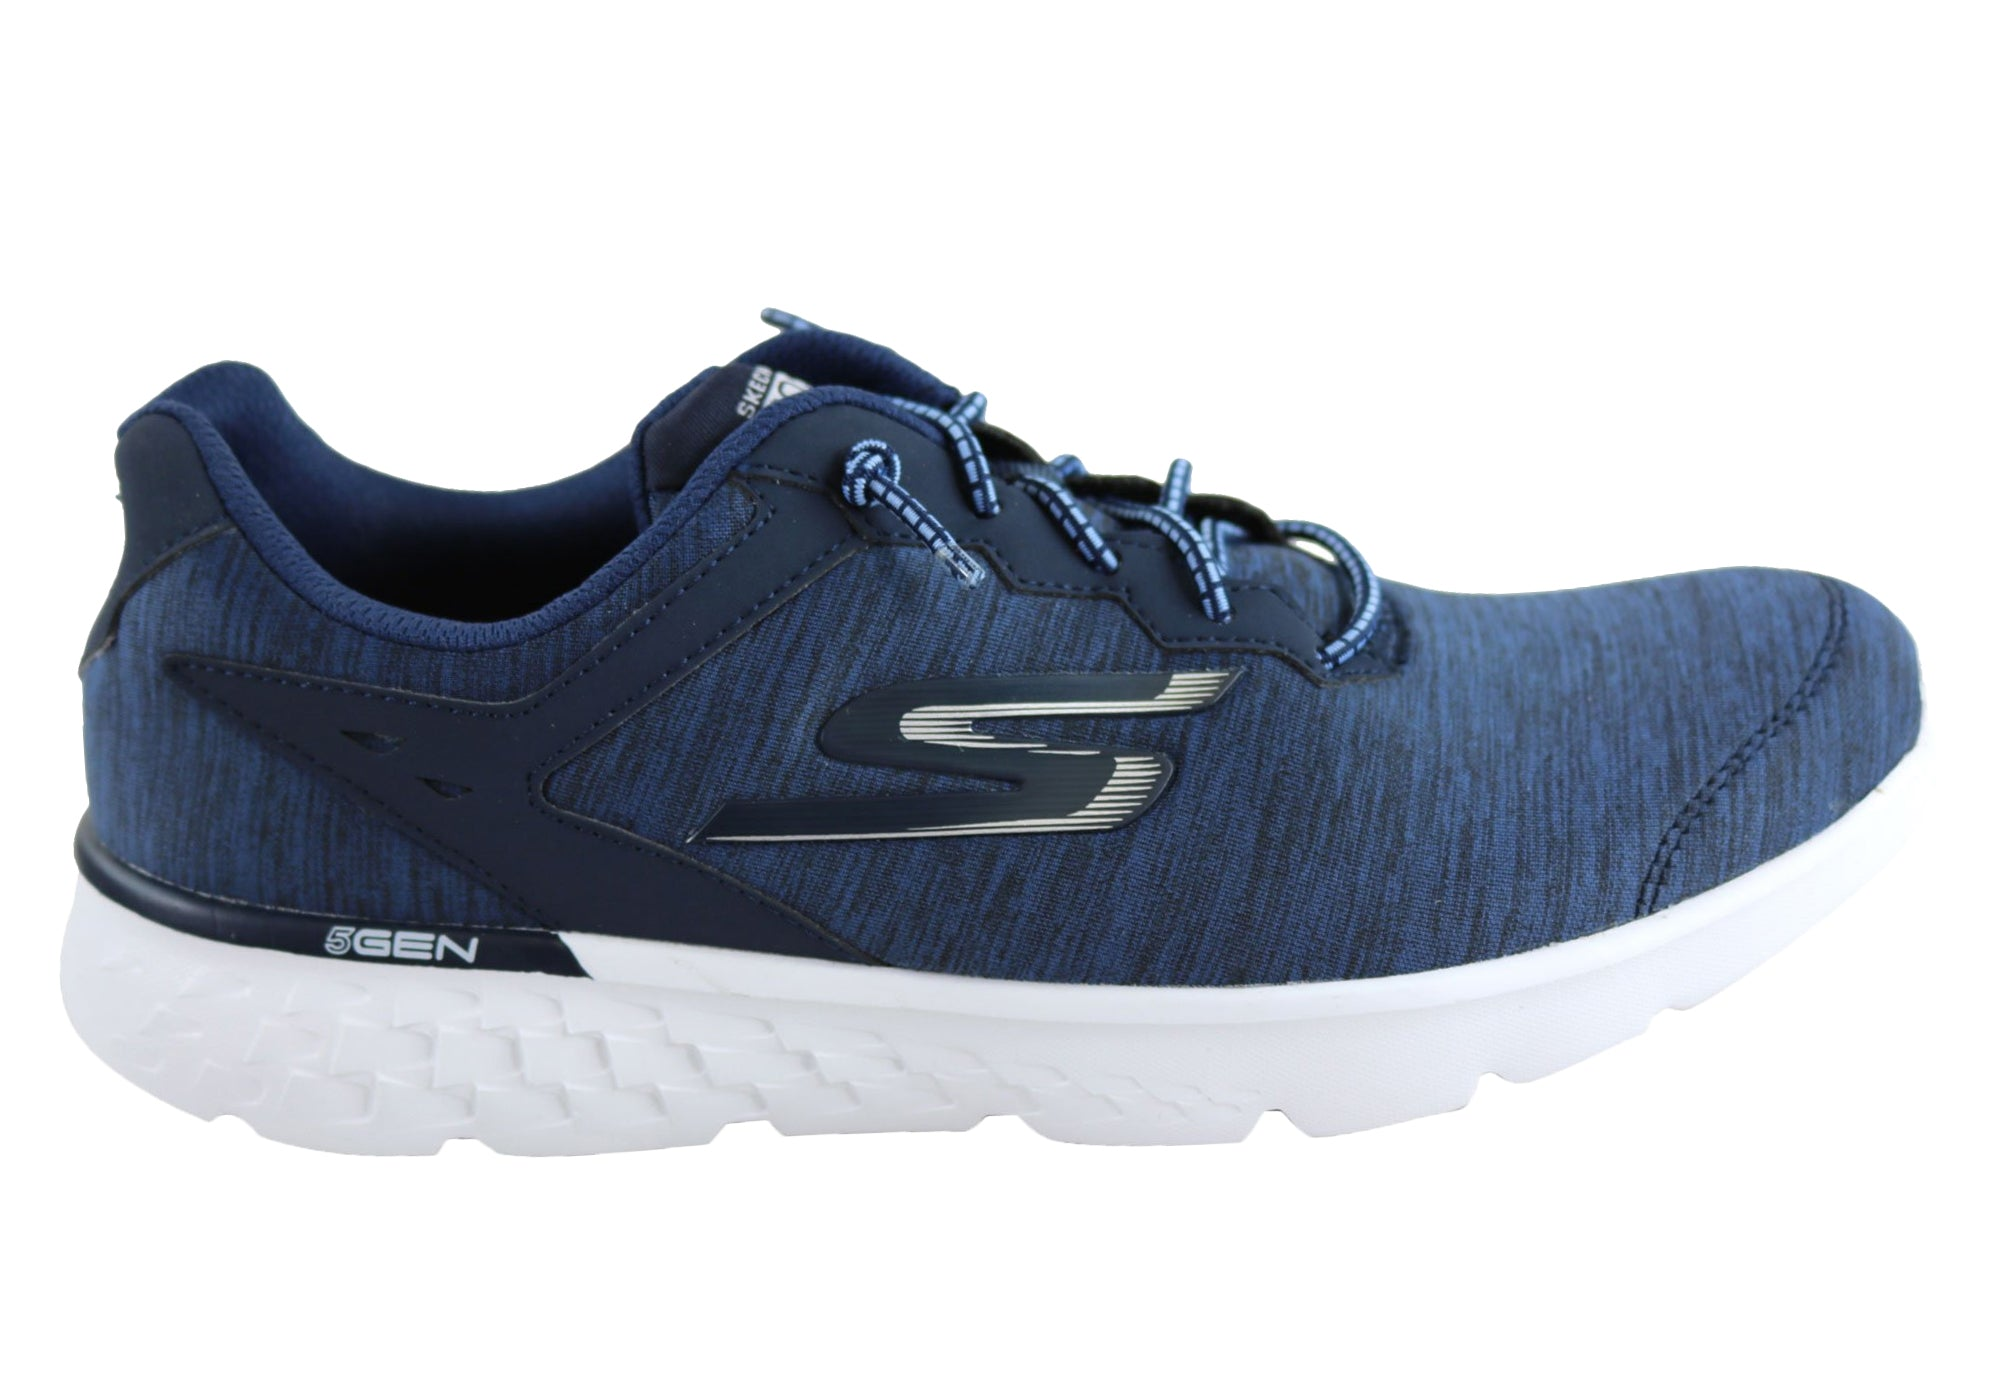 c5fa684e3767 Details about Brand New Skechers Go Run 400 Swiftly Womens Comfortable Athletic  Shoes